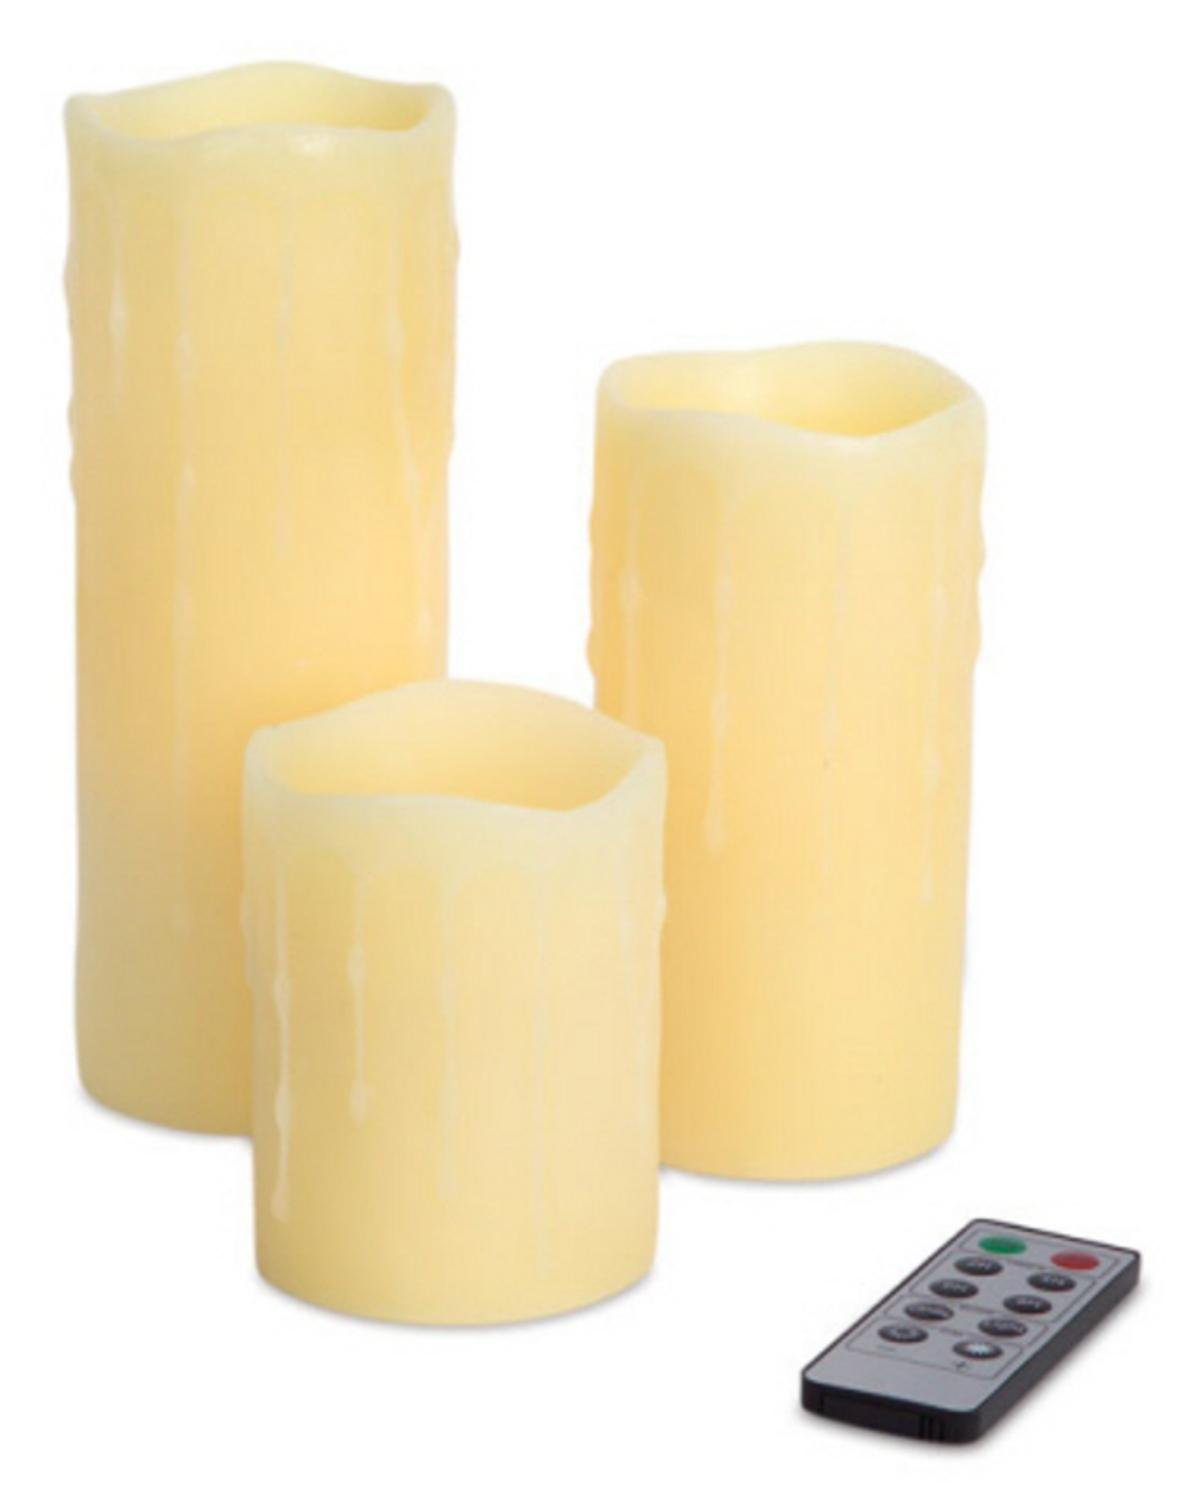 6 Ivory Dripping Remote Controlled Battery-Operated LED Flameless Pillar Candles